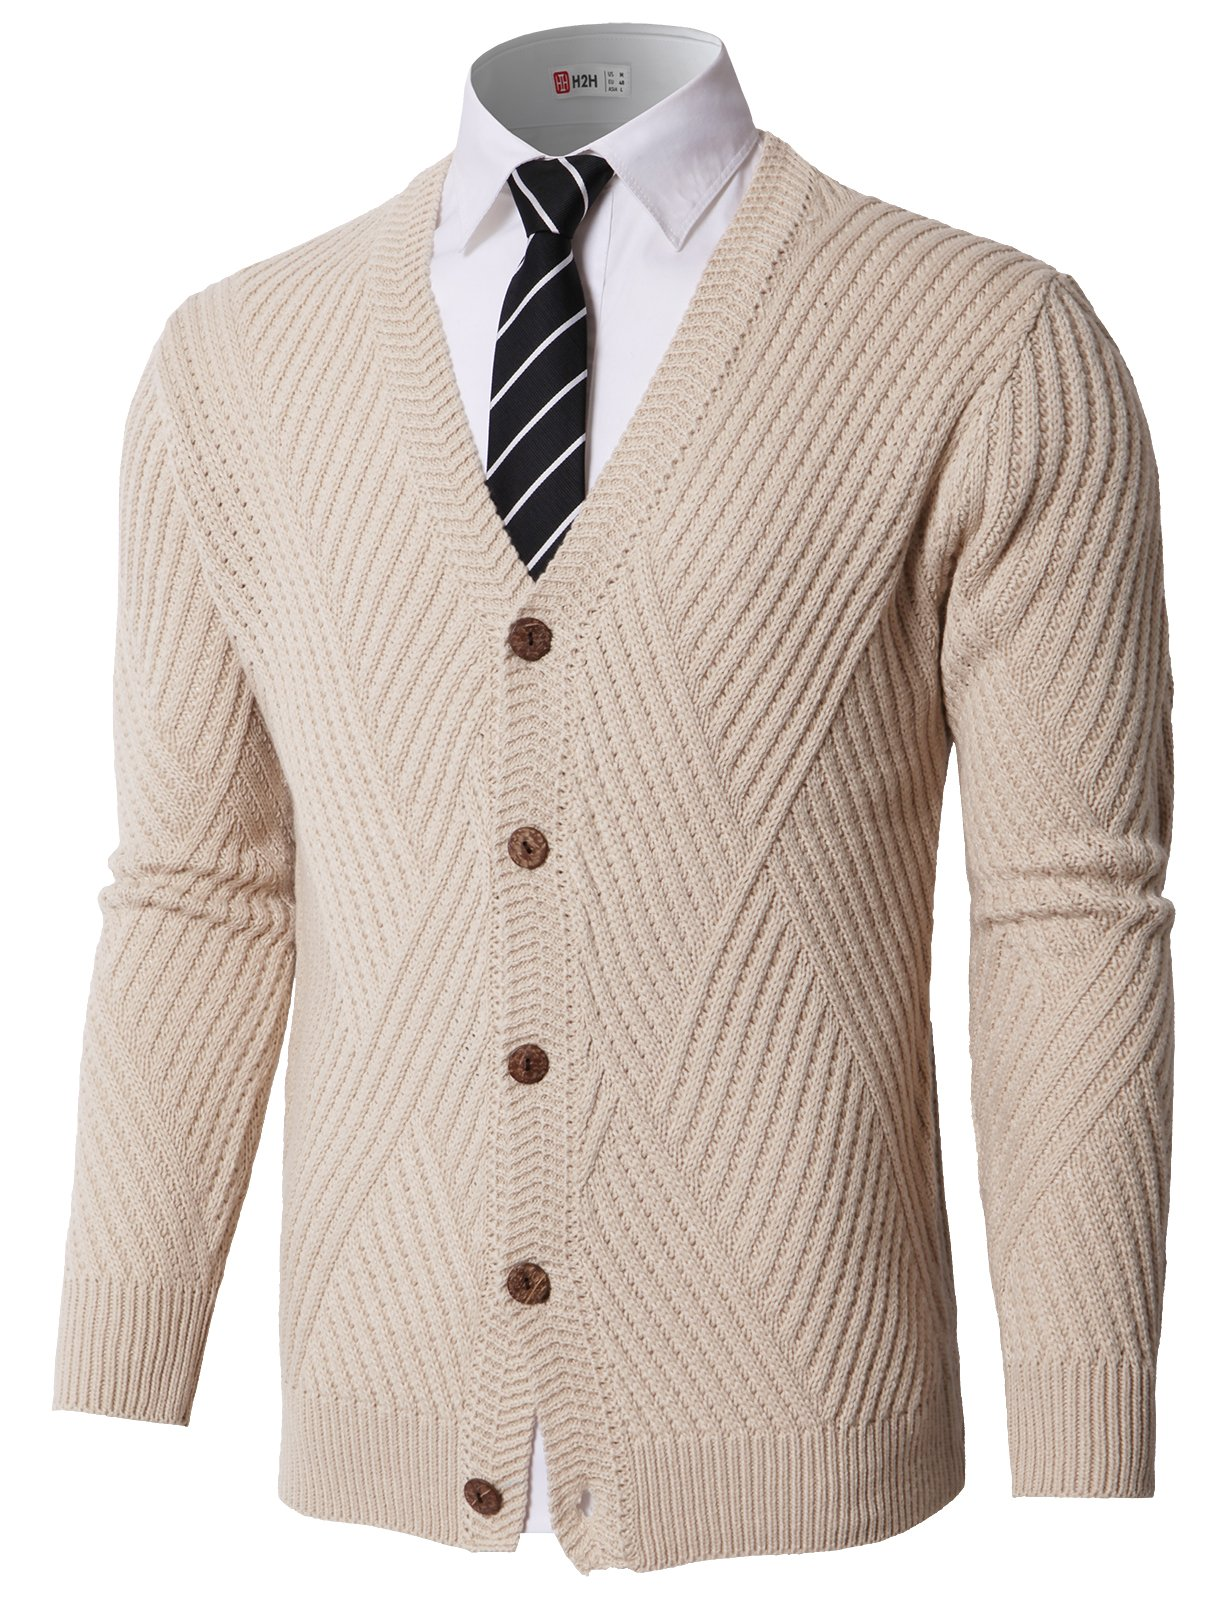 H2H Mens Slim Fit Stylish Button up Cardigan Beige US L/Asia L (KMOCAL0176)